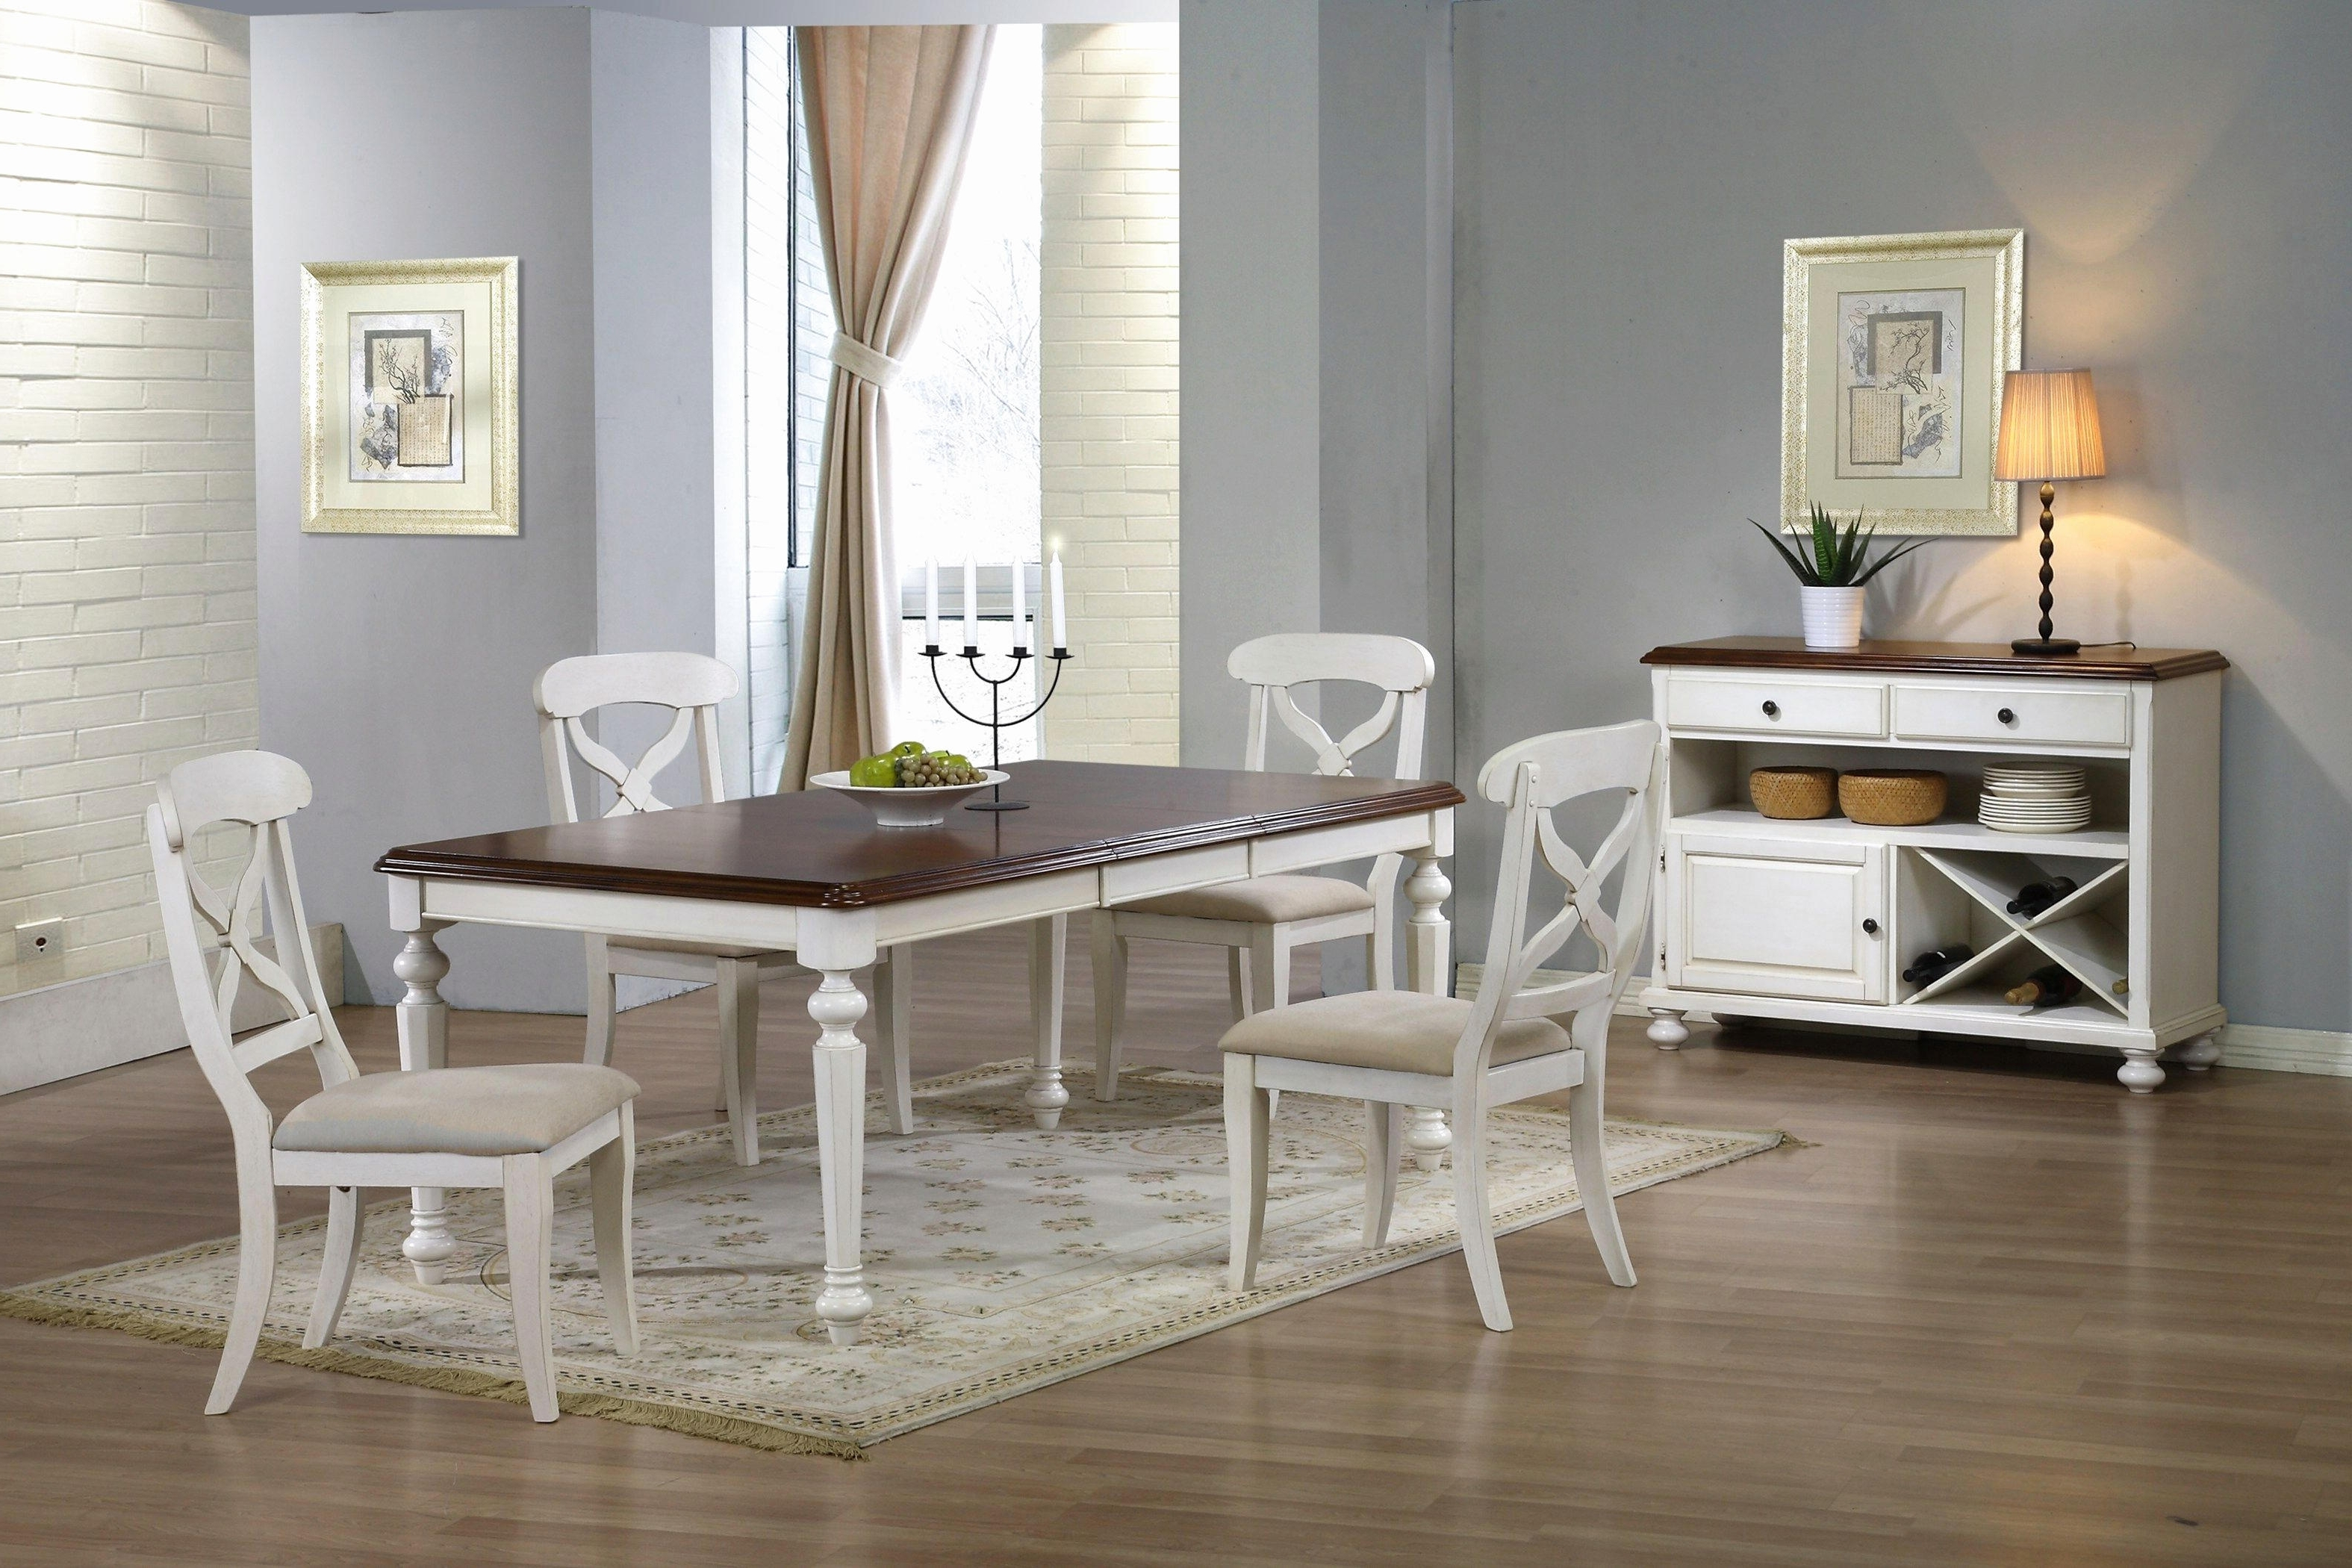 Gray Wood Chairs Awesome Chair Dinette Sets Tables Furniture 2017 With Regard To Most Up To Date Jaxon Grey 7 Piece Rectangle Extension Dining Sets With Wood Chairs (Gallery 20 of 25)